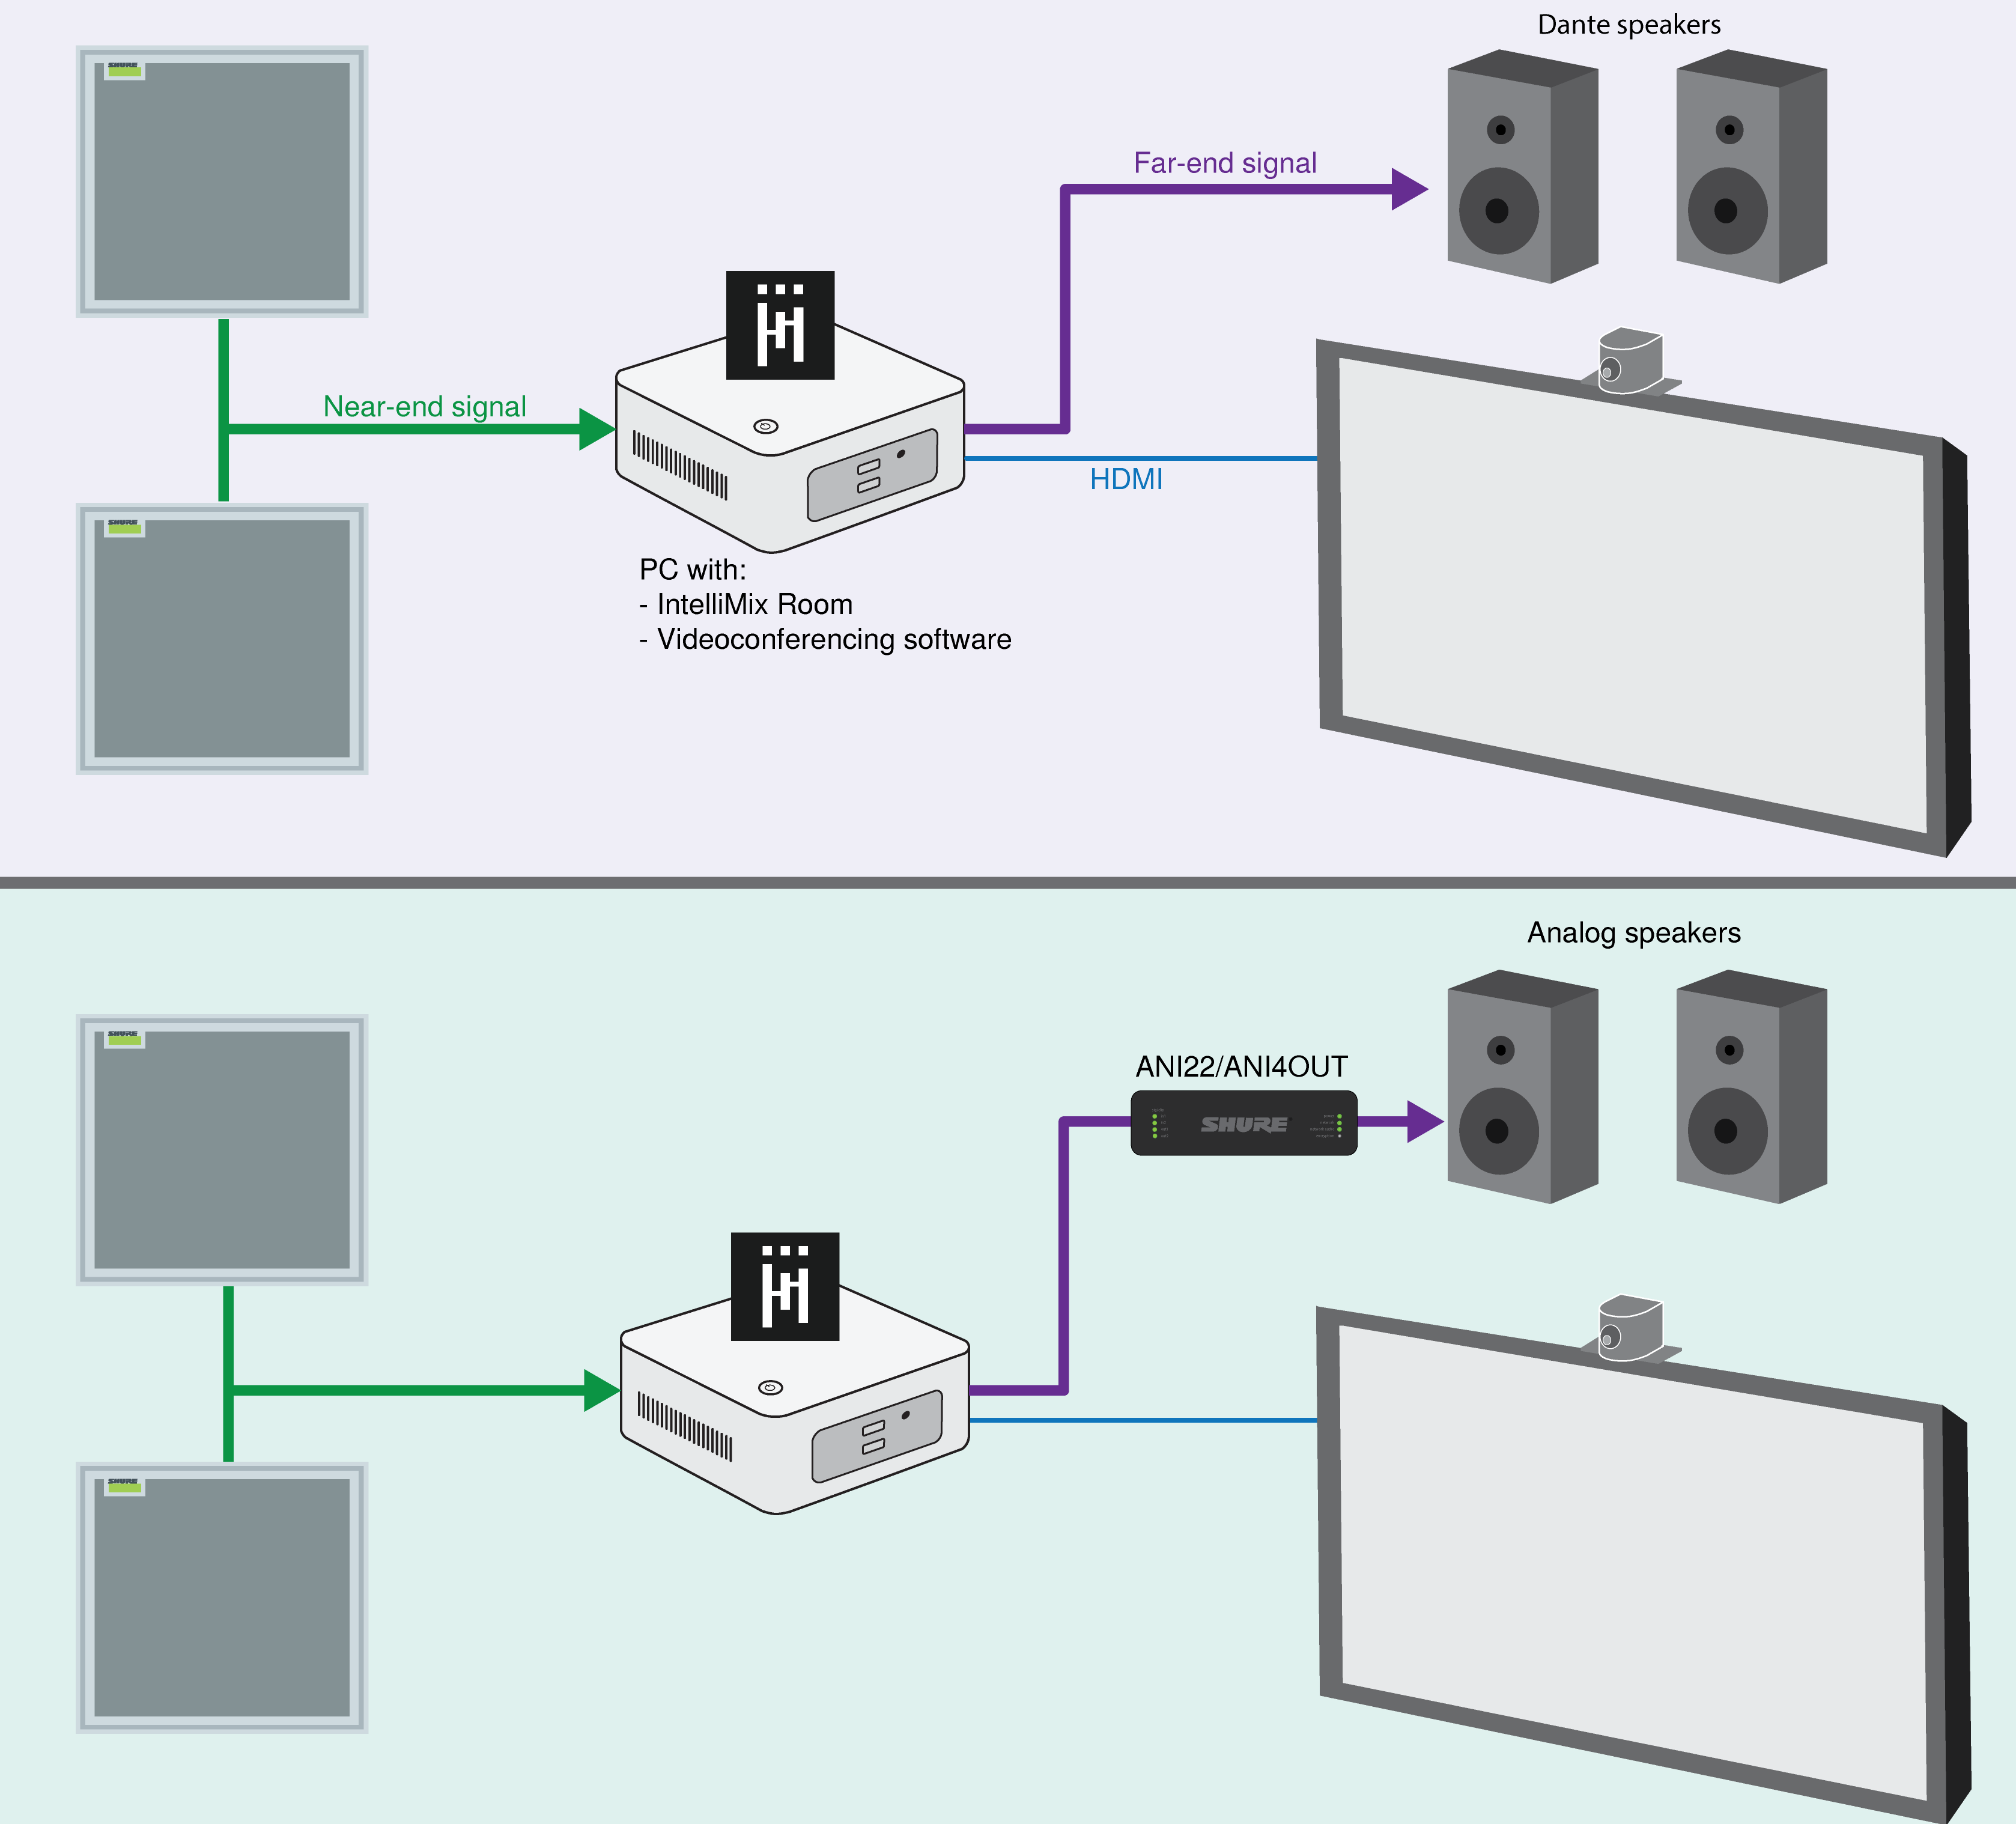 Connection diagrams showing 2 ceiling array mics, a computer running IntelliMix Room, a display/camera, and 2 loudspeakers (analog or Dante).